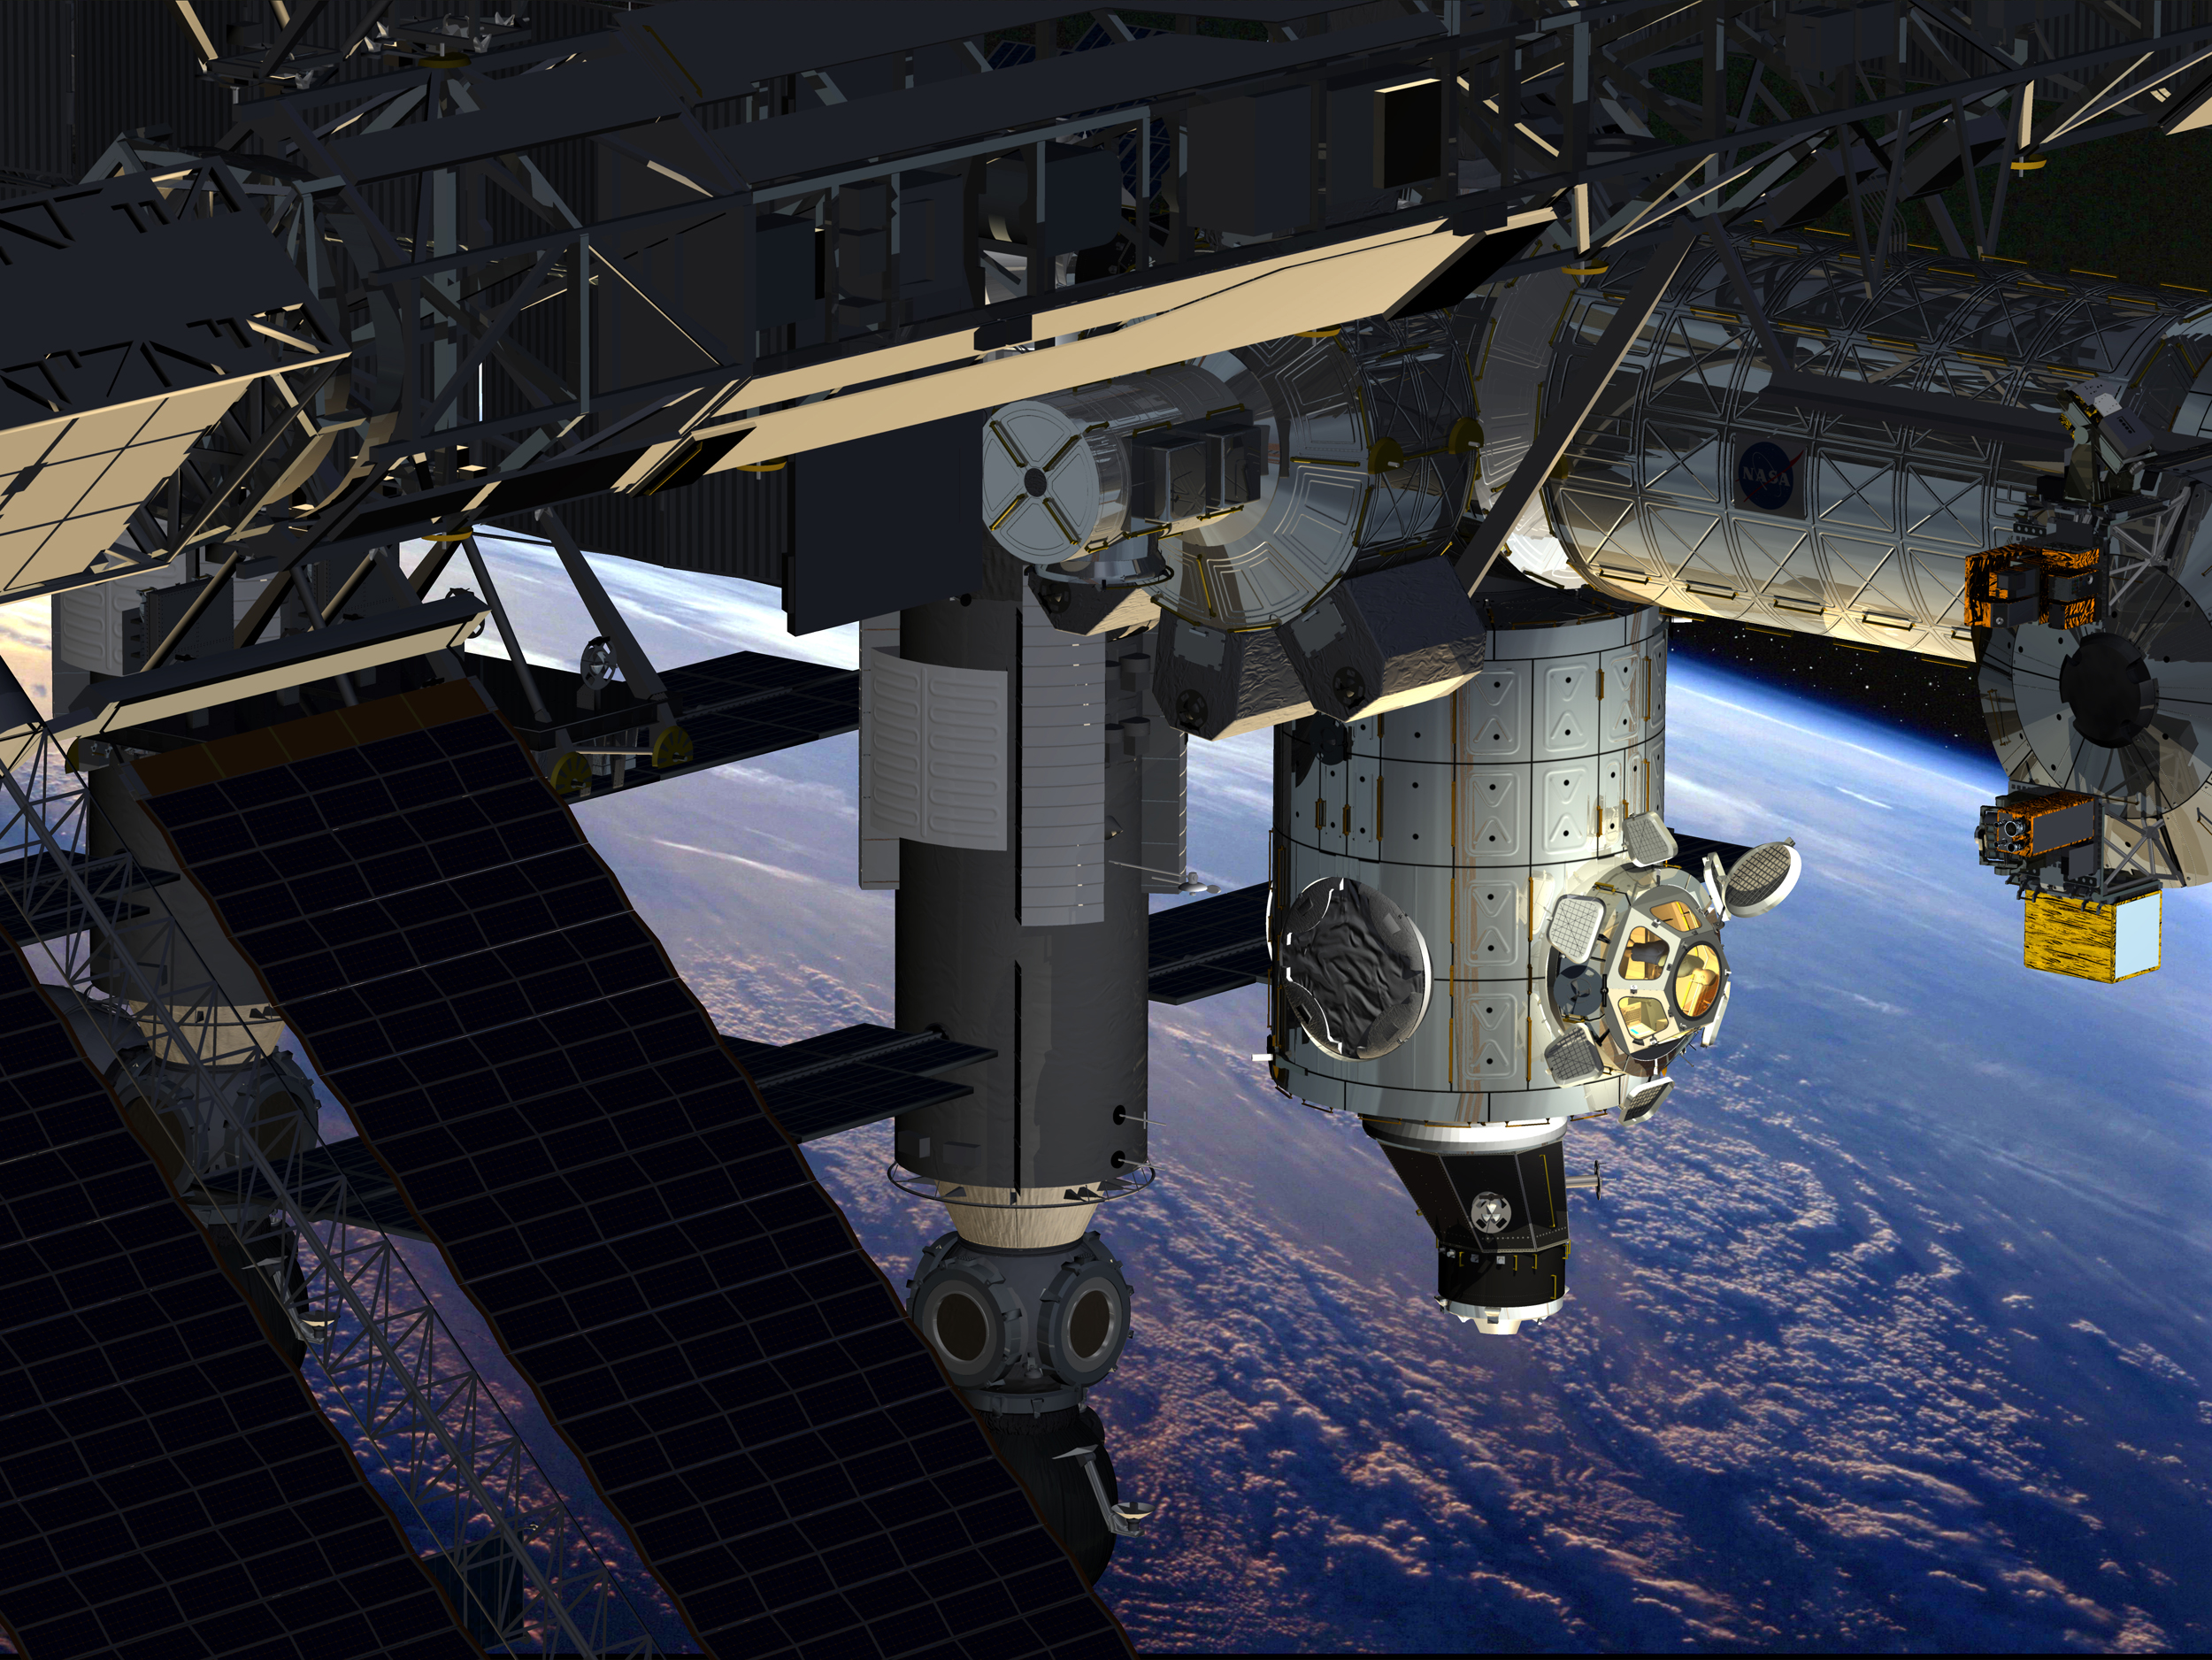 International Space Station Cupola - Pics about space